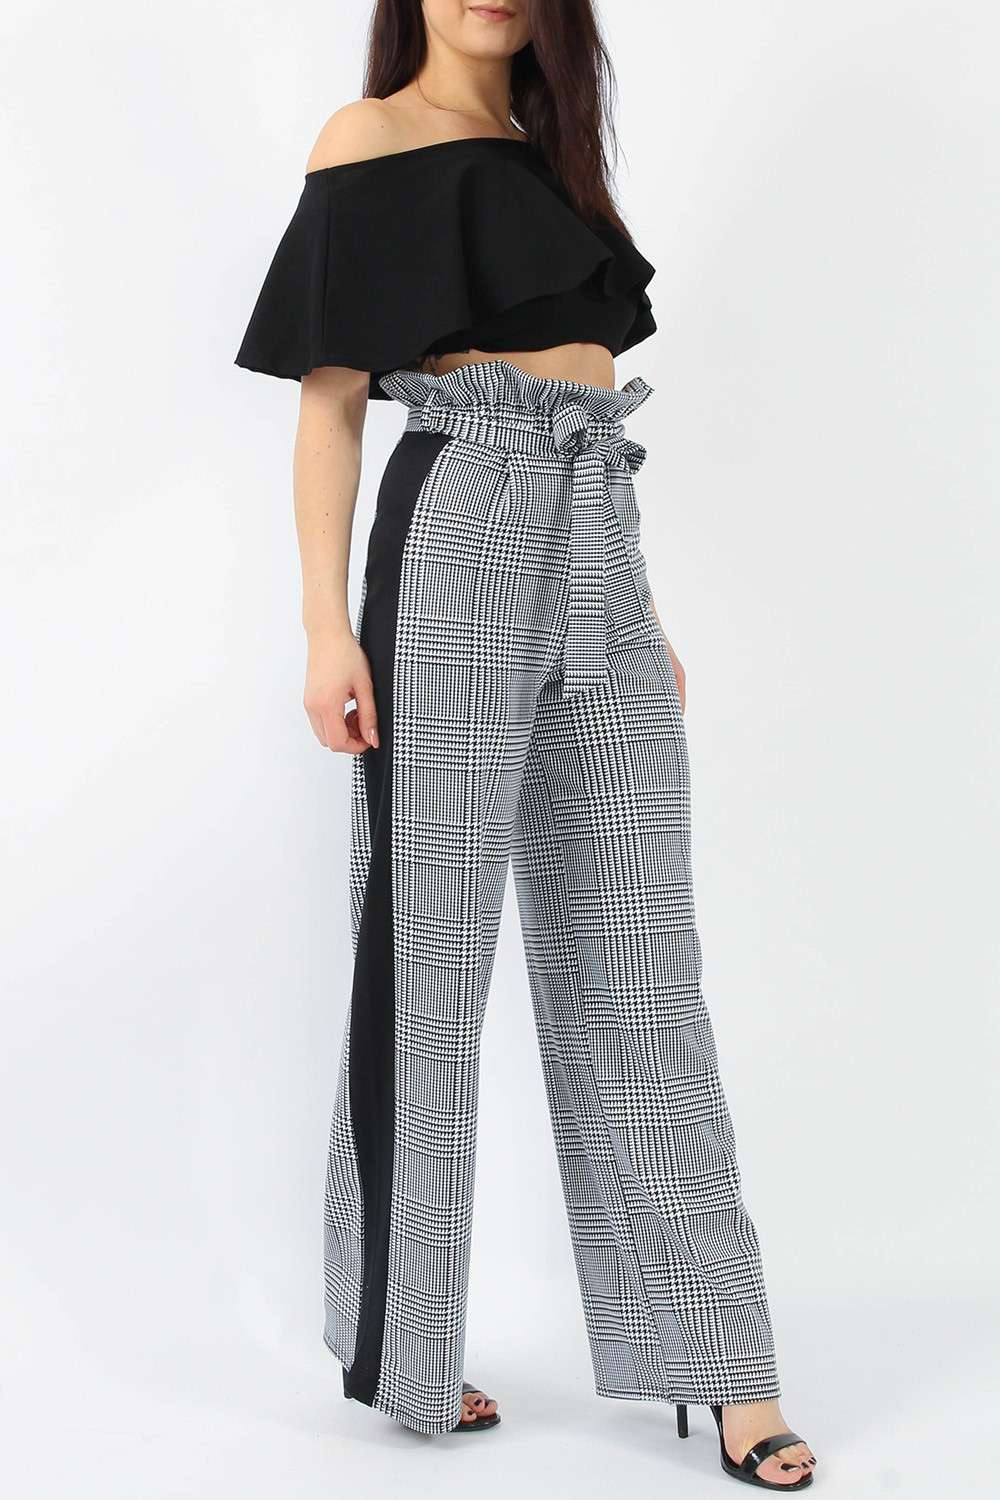 High Waisted Hose